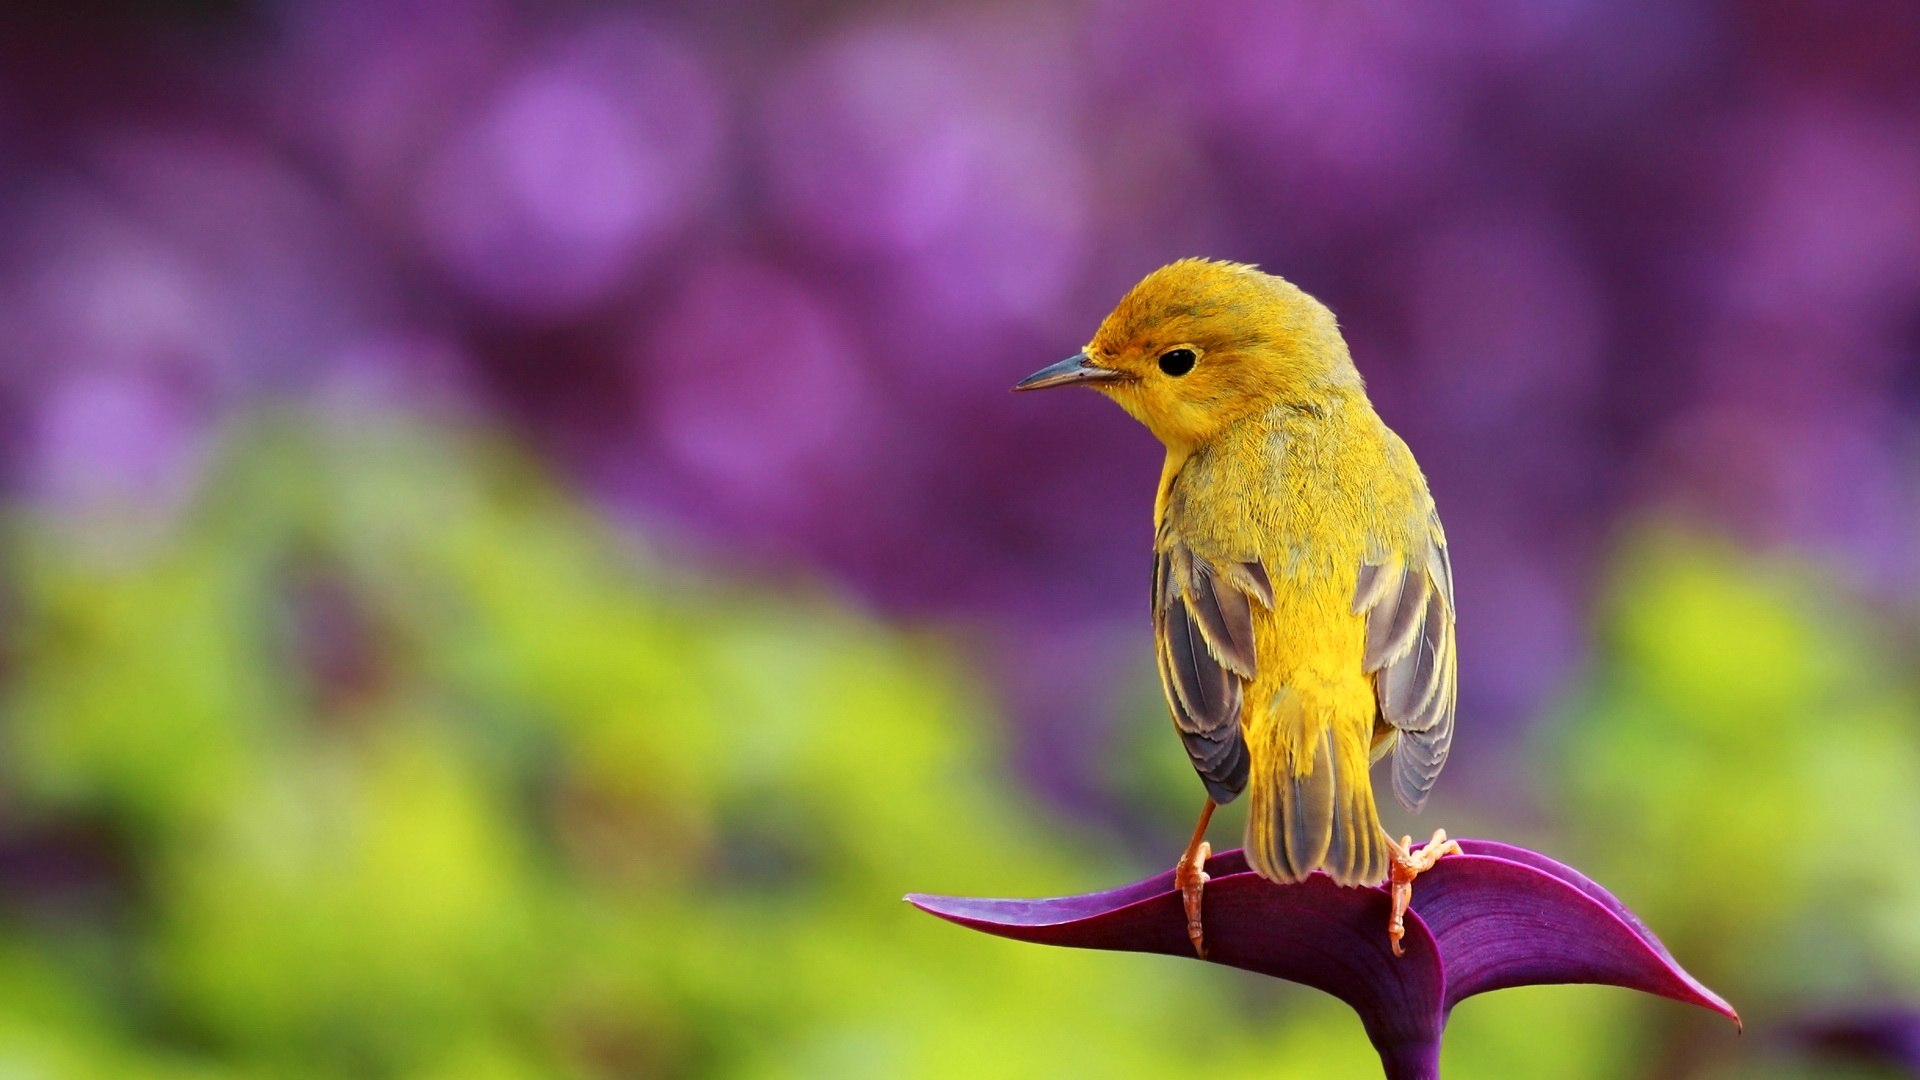 Beautiful Yellow Bird Hd Spring Wallpaper